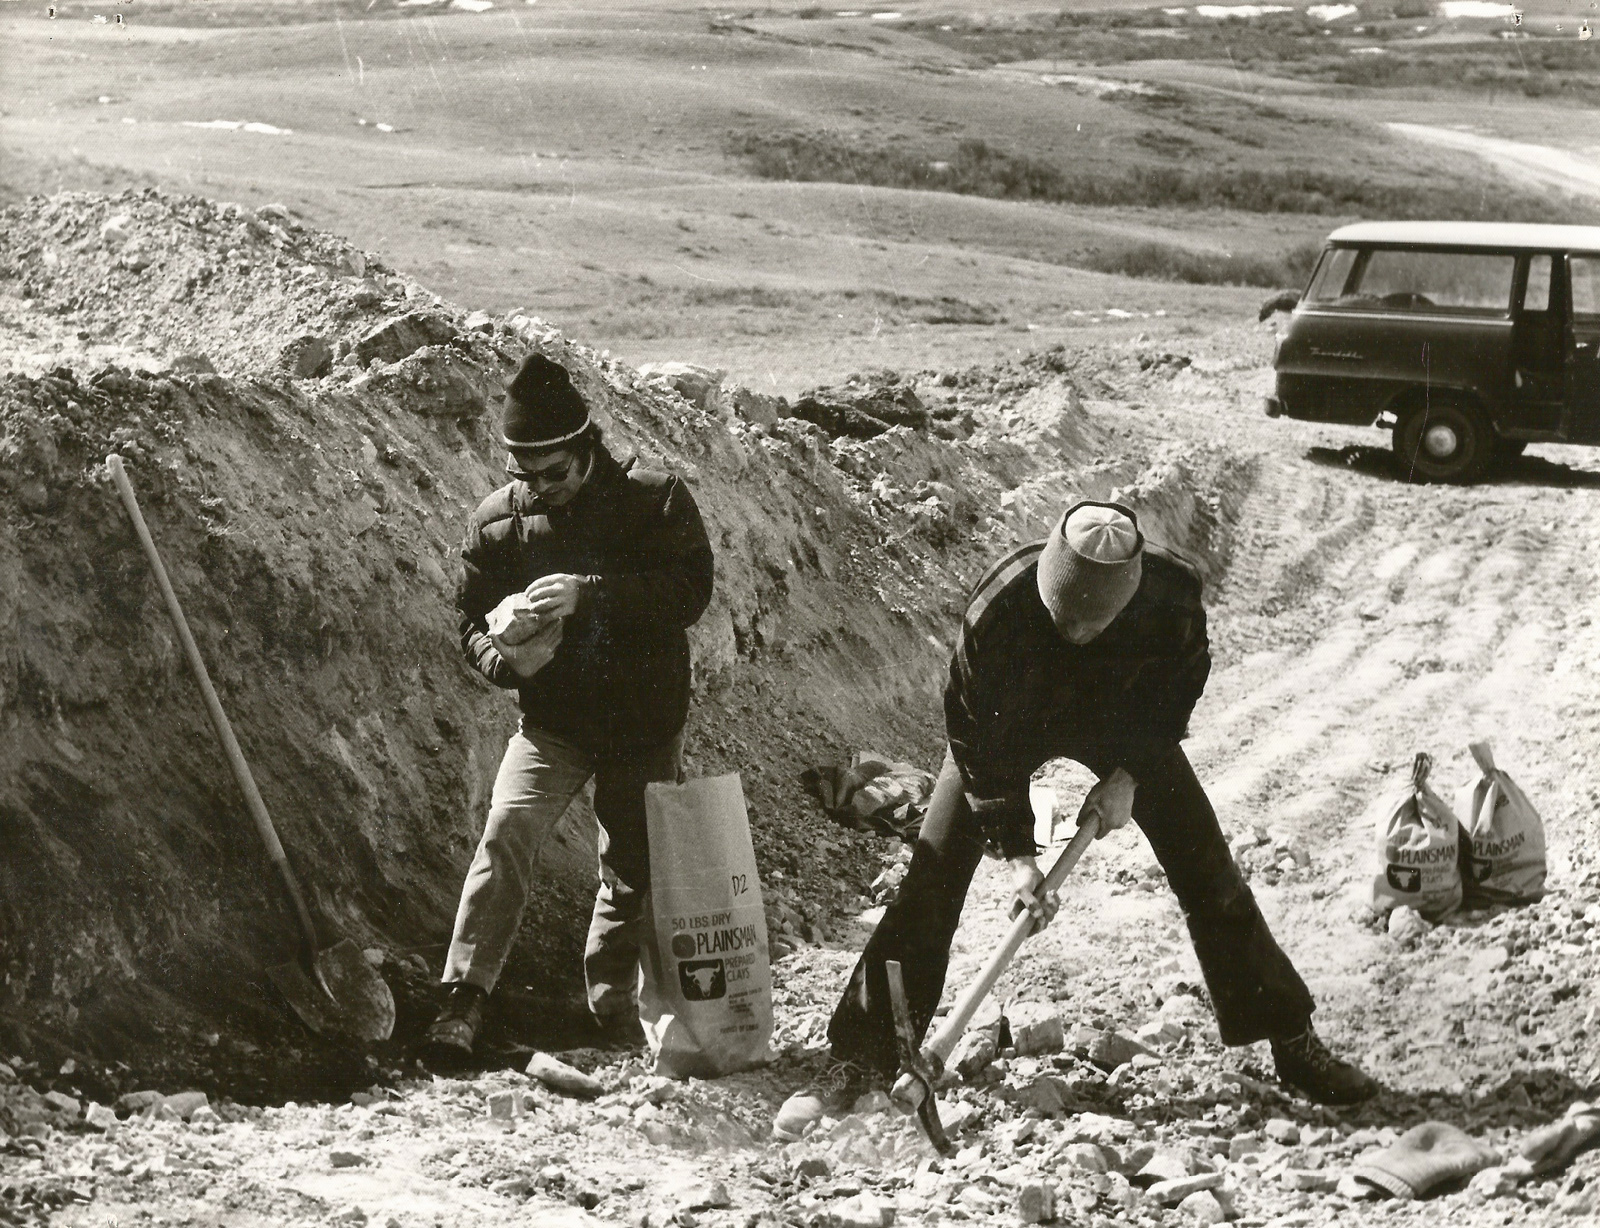 John Porter and Luke Lindoe taking lump clay samples from the side of a hill in southern Saskatchewa